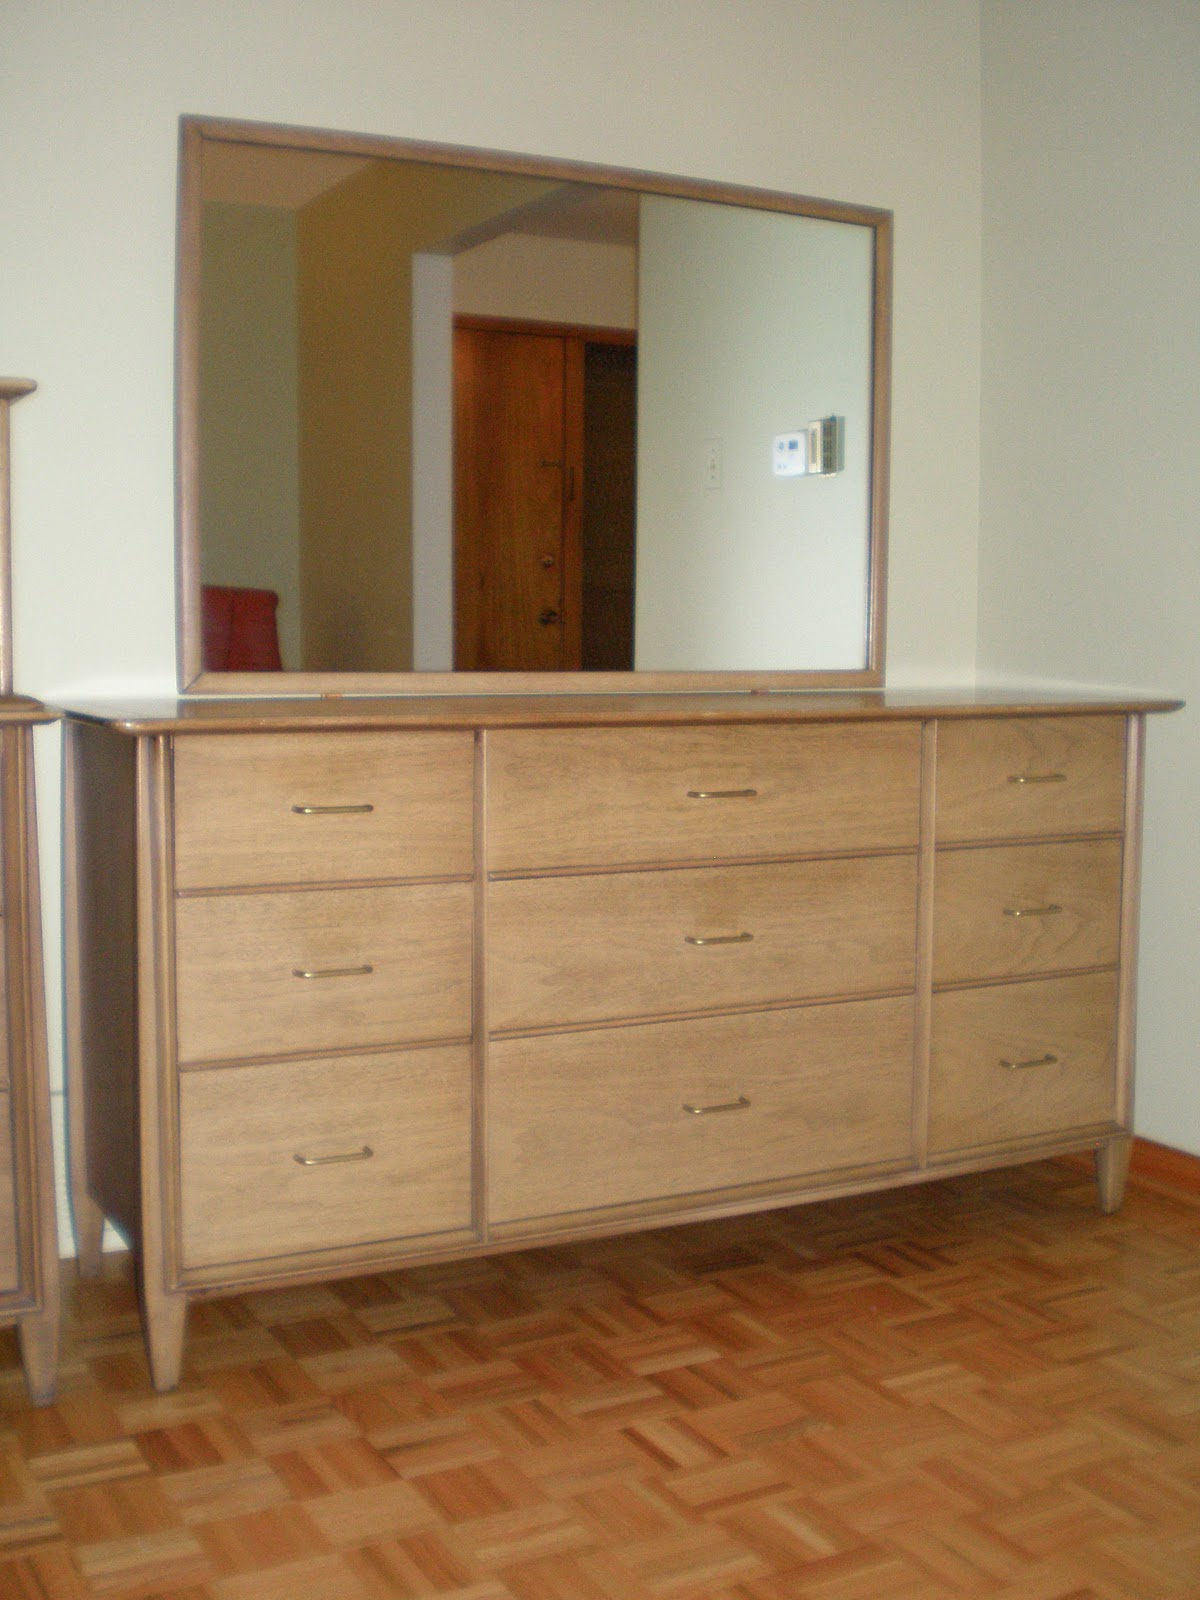 The Retrospective Modernist Kent Coffey The Holmes Dresser With - Kent coffey bedroom furniture